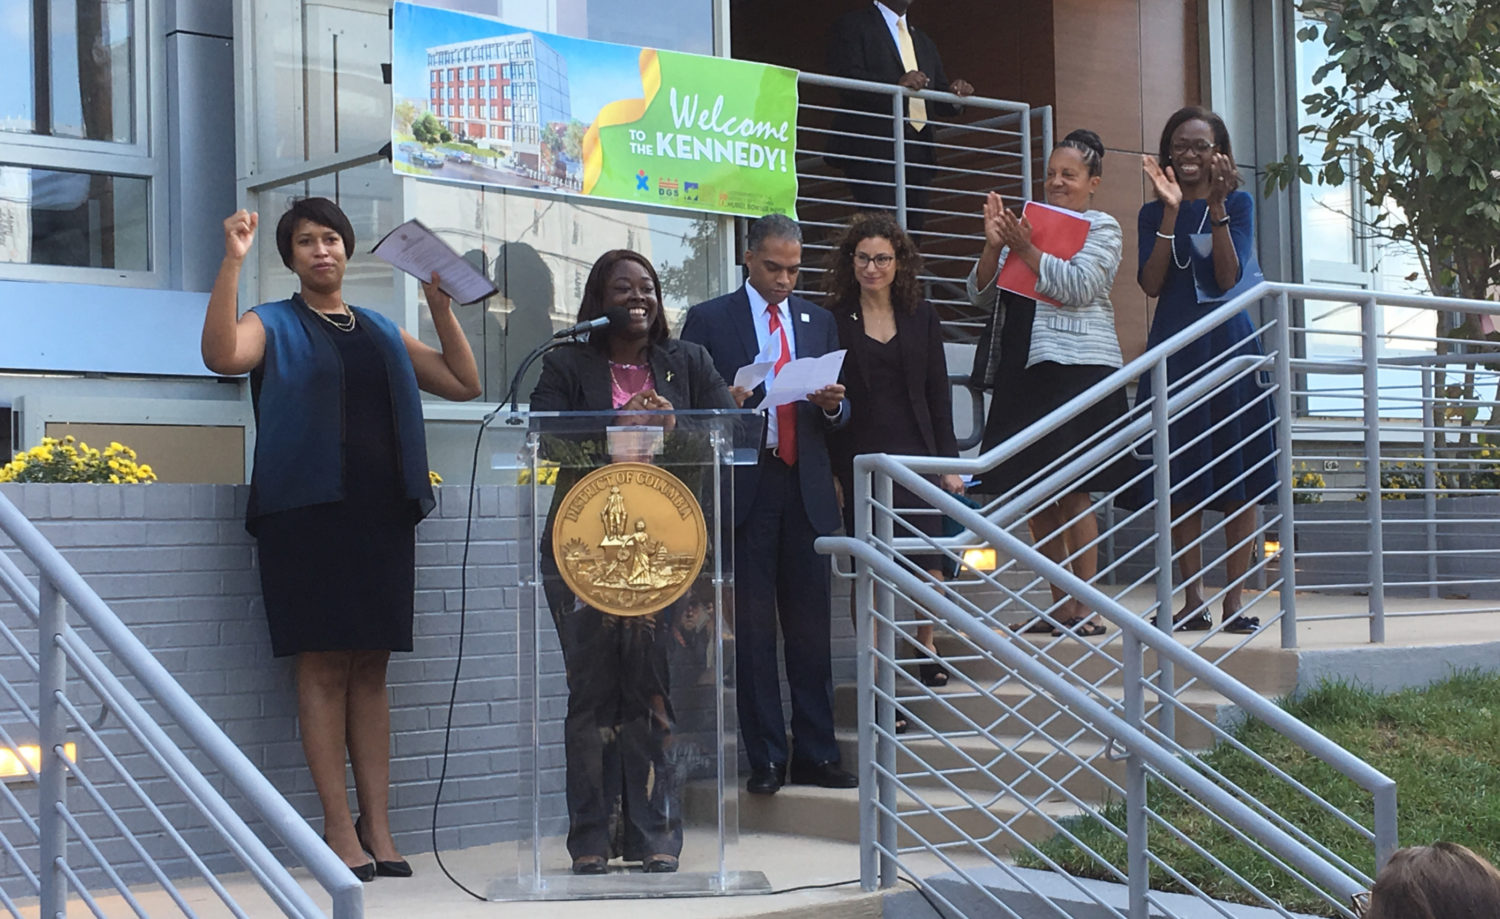 Mayor Muriel Bowser standing alongside Markita Abbott, who was homeless and lived at D.C. General, at the ribbon-cutting for The Kennedy, a new 45-unit ...